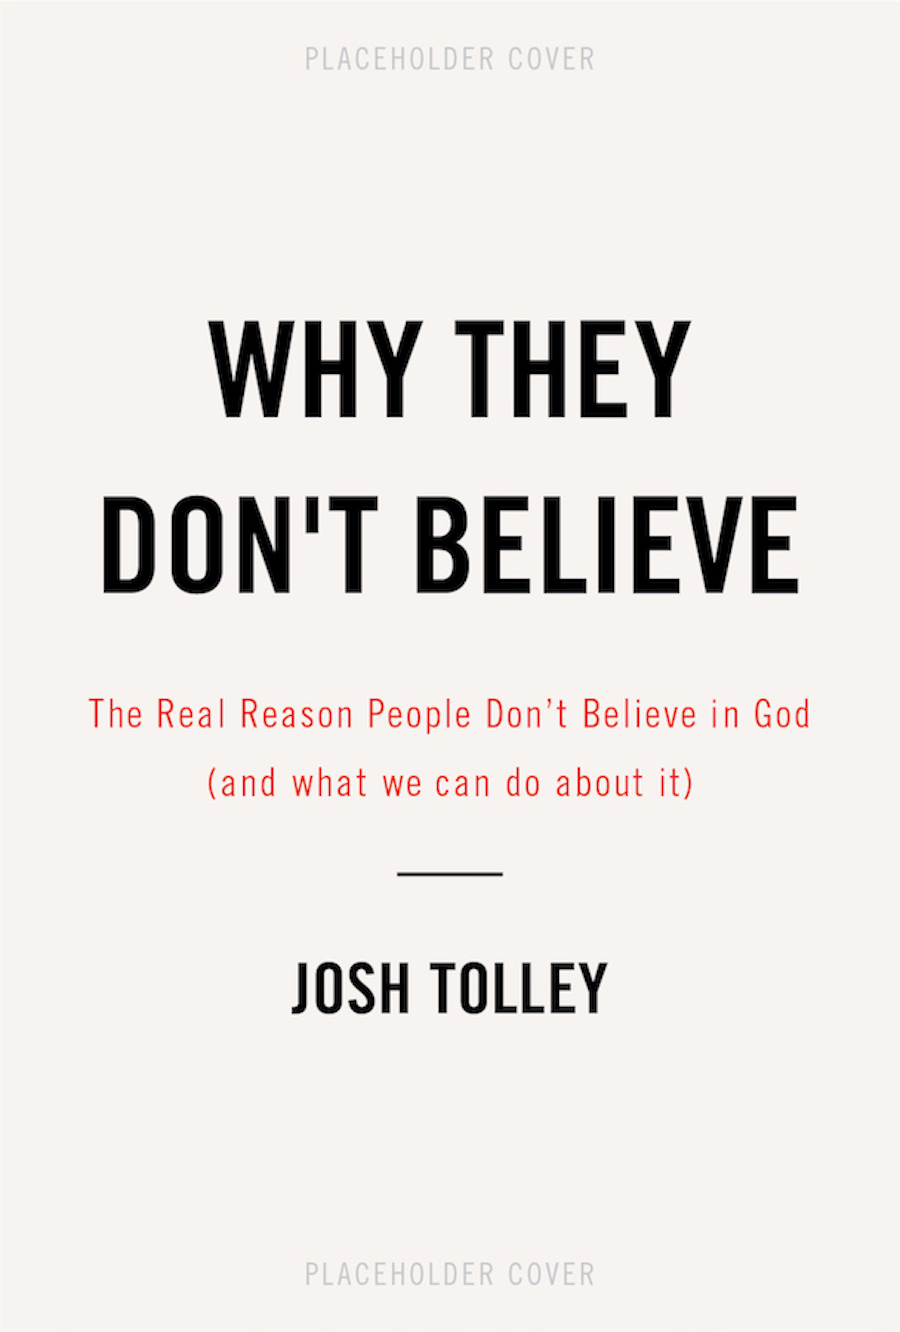 Why They Don't Believe